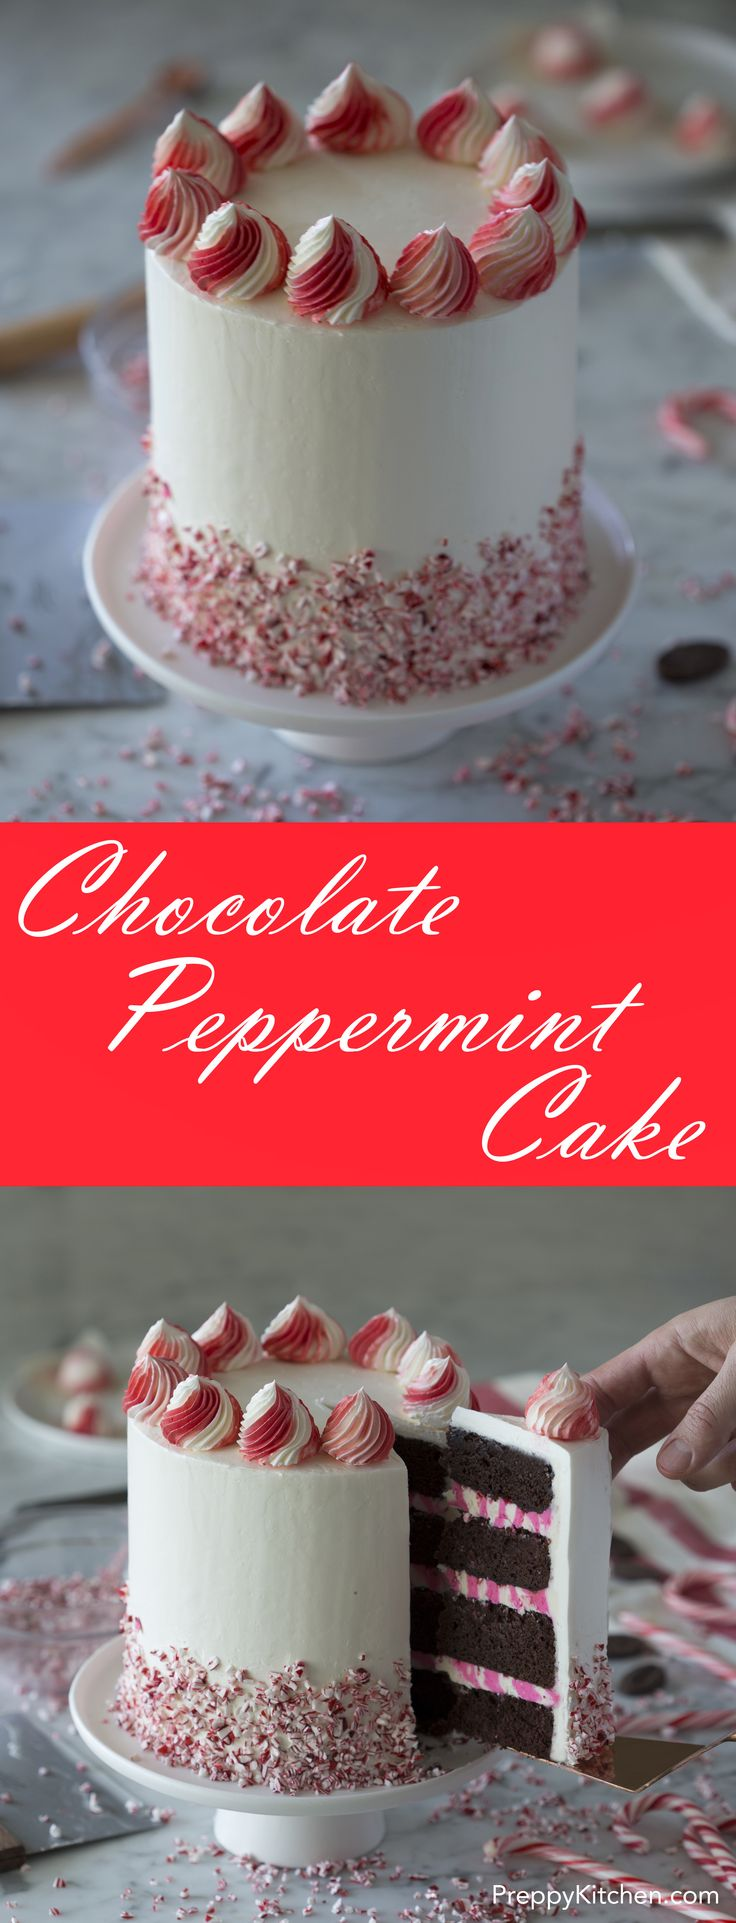 Chocolate Peppermint Cake via @preppykitchen